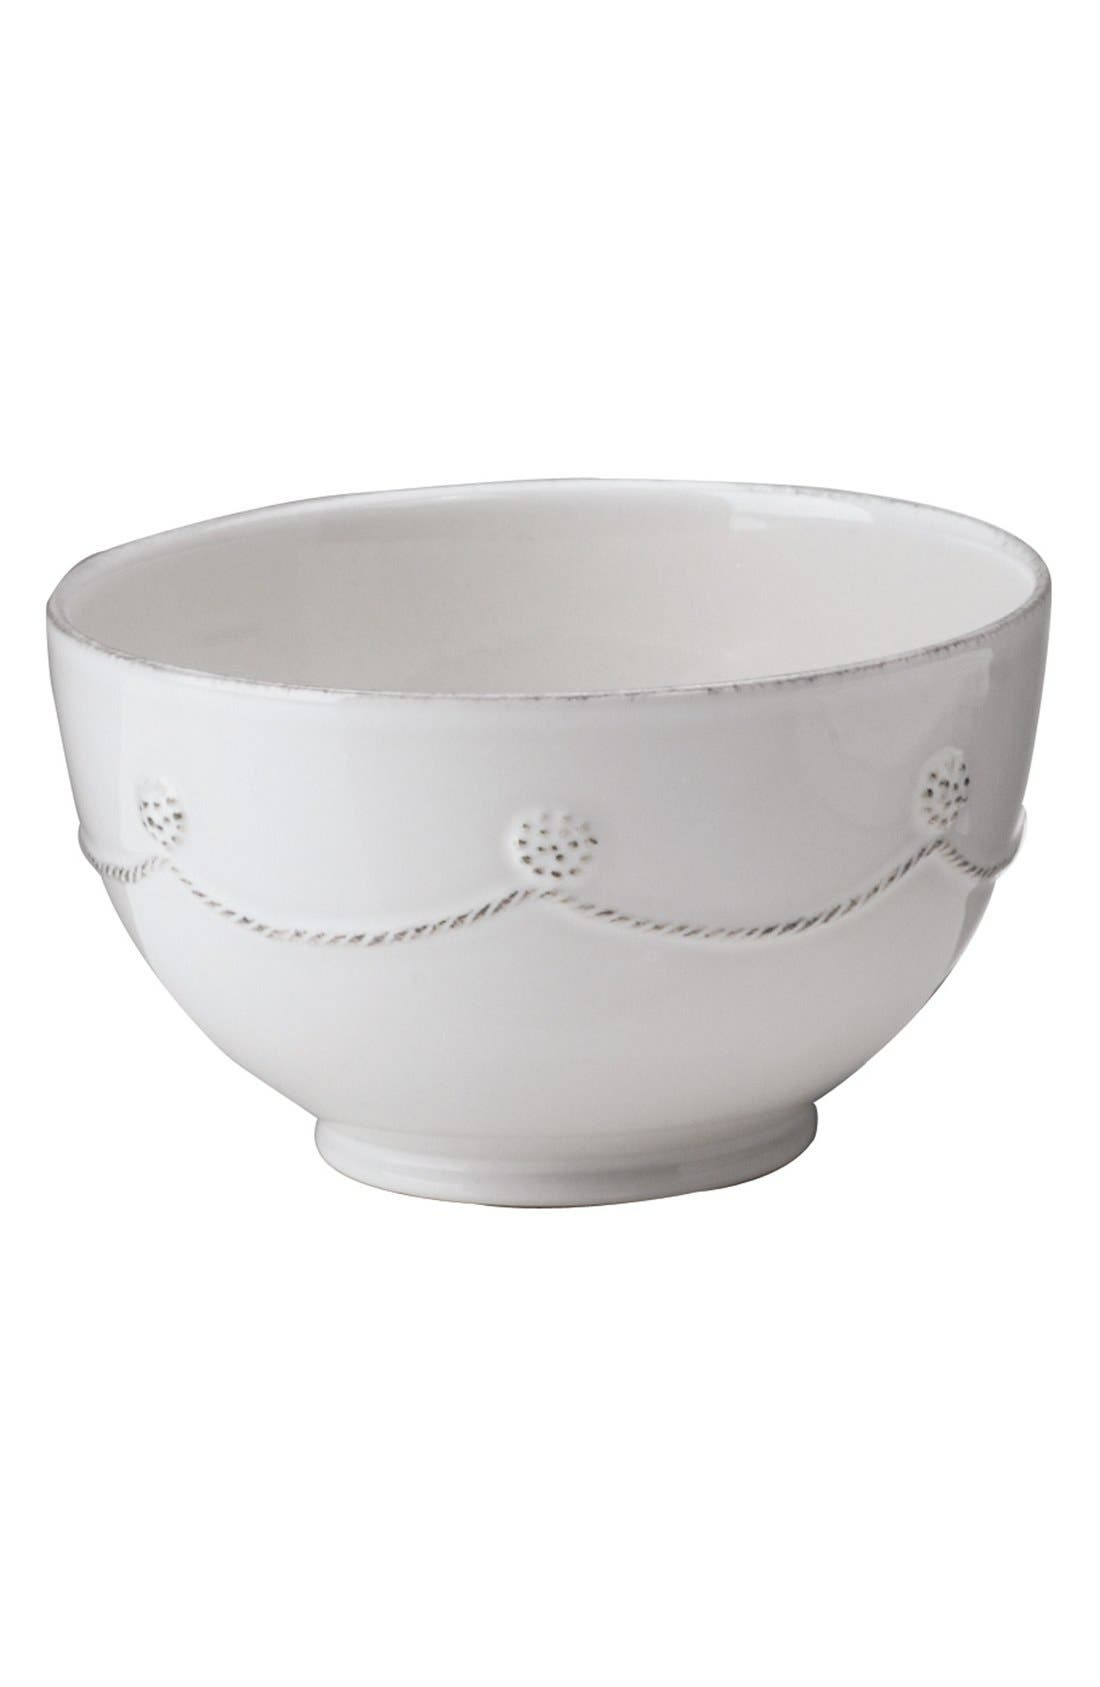 'Berry and Thread' Cereal Bowl,                         Main,                         color, Whitewash